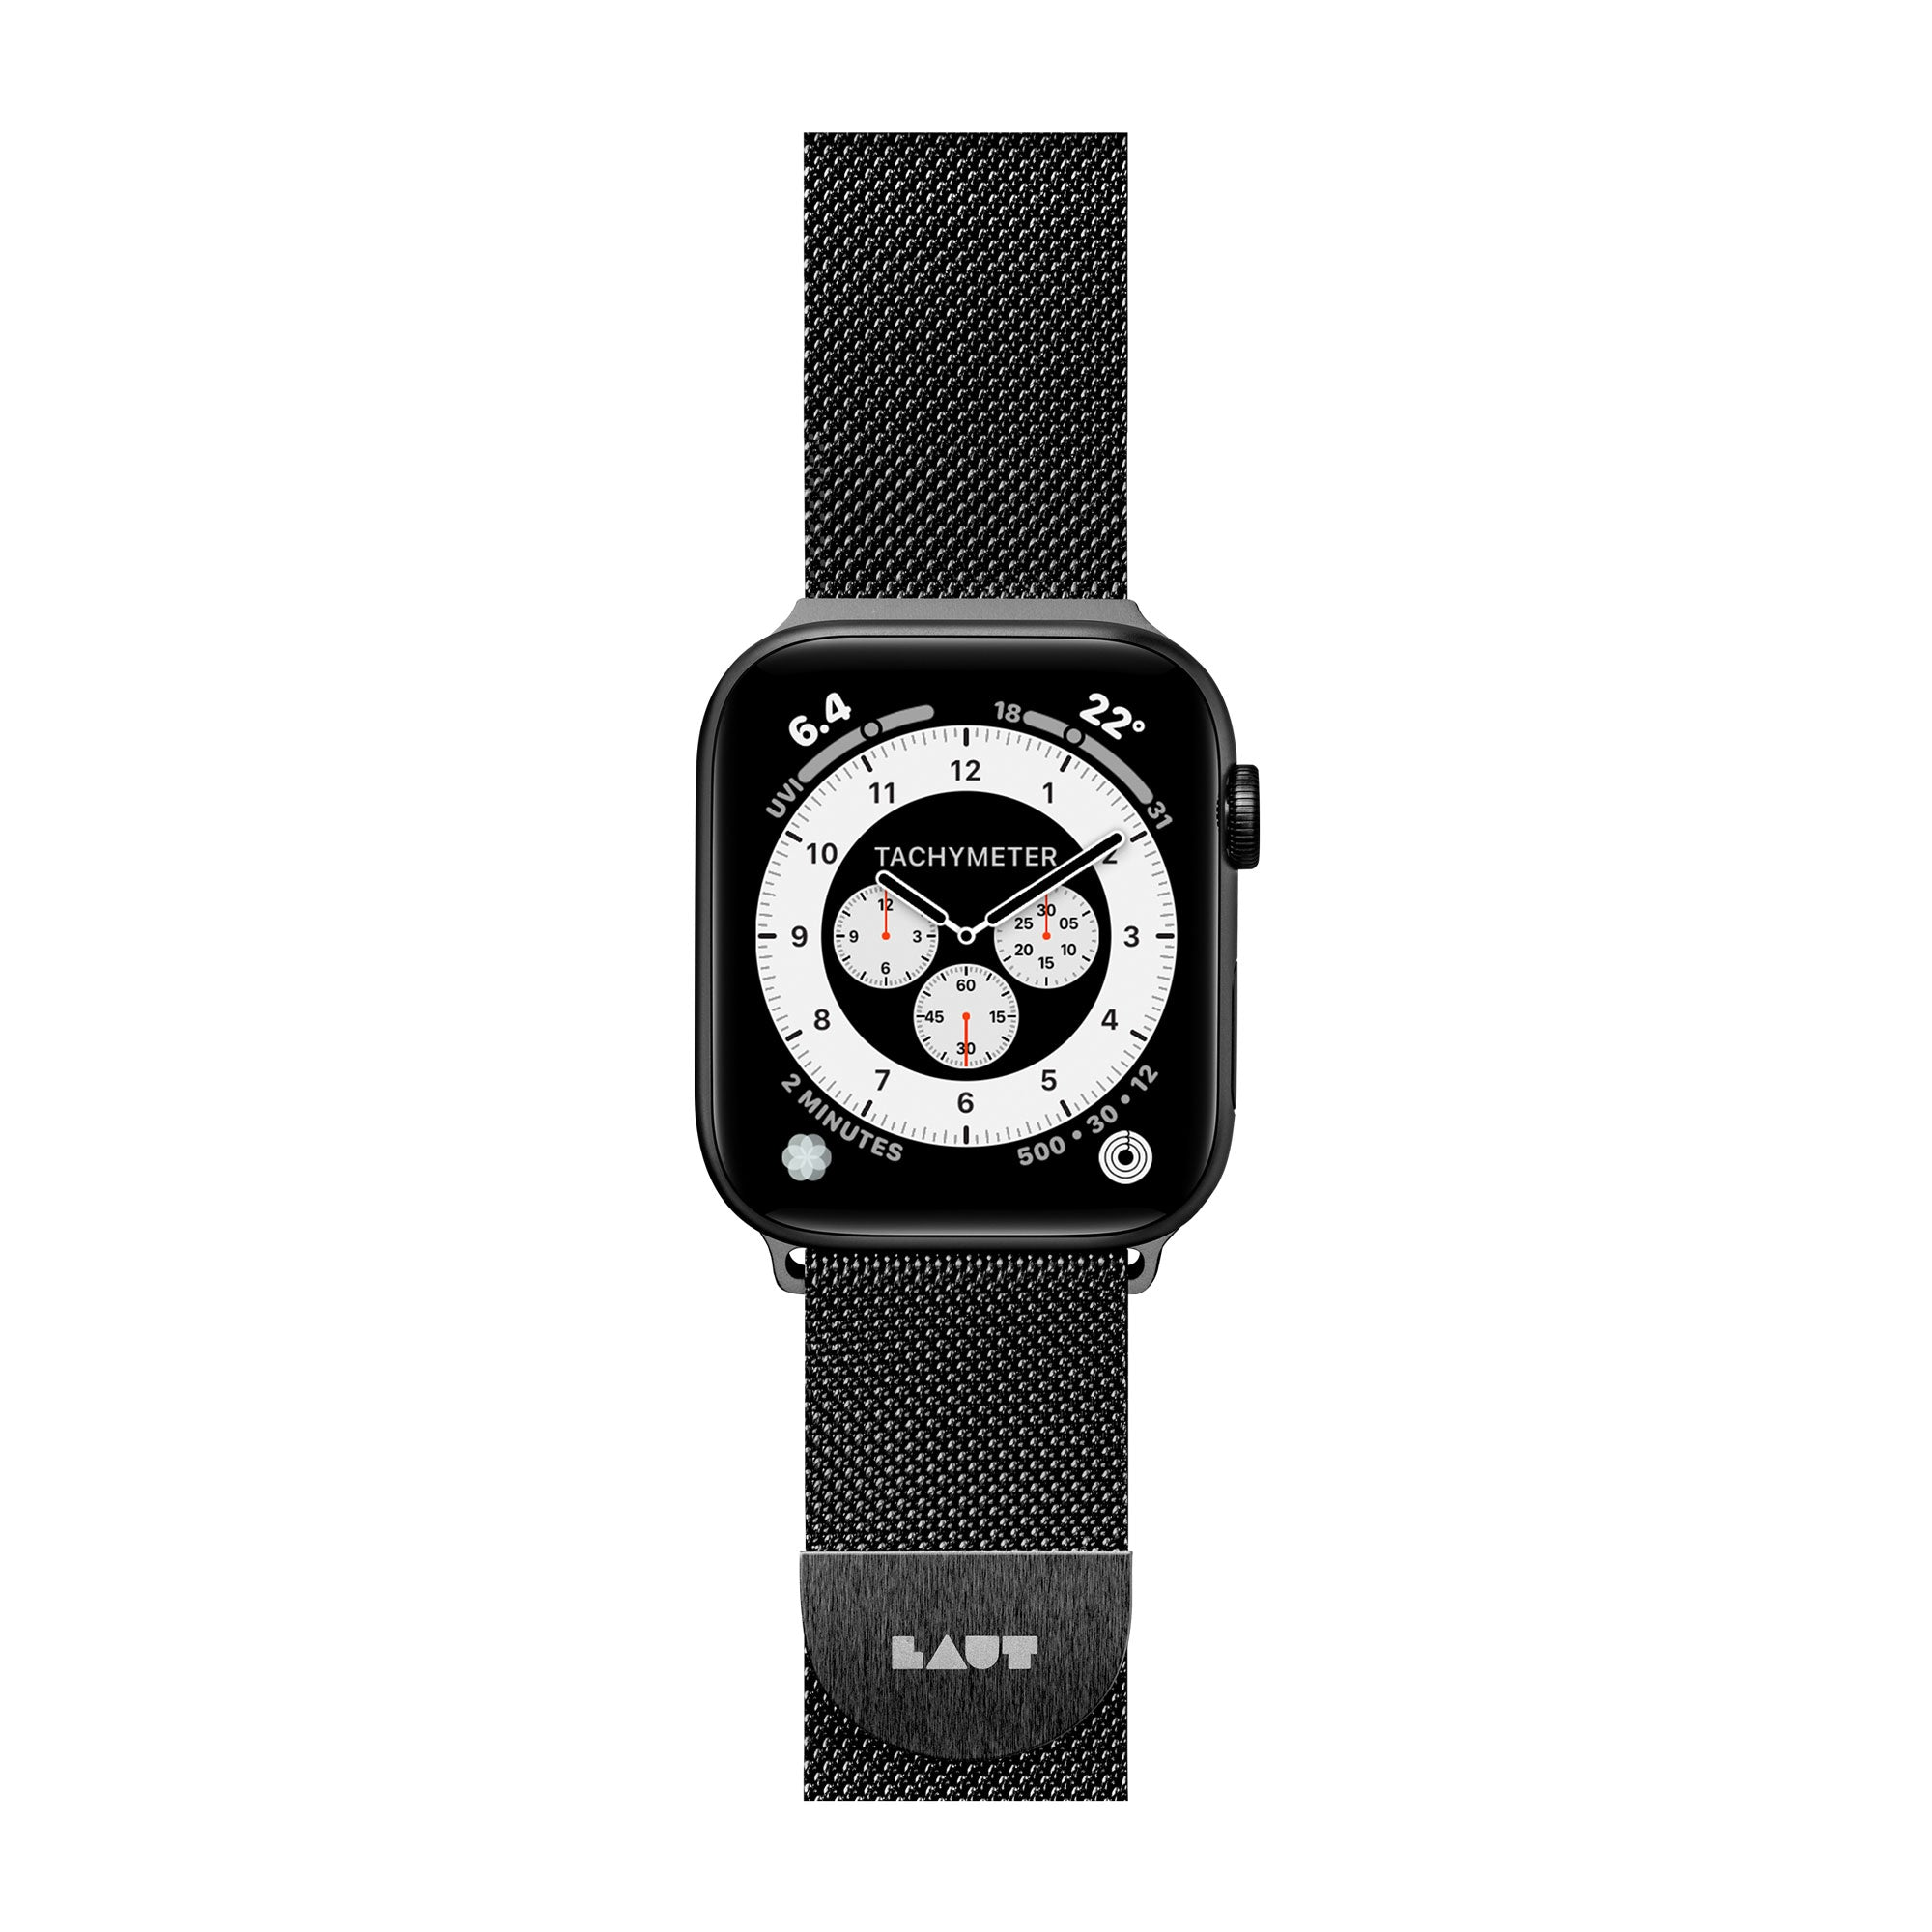 f04bca55e Steel Loop Watch Strap for Apple Watch Series 1/2/3/4  Stainless Steel -  LAUT USA